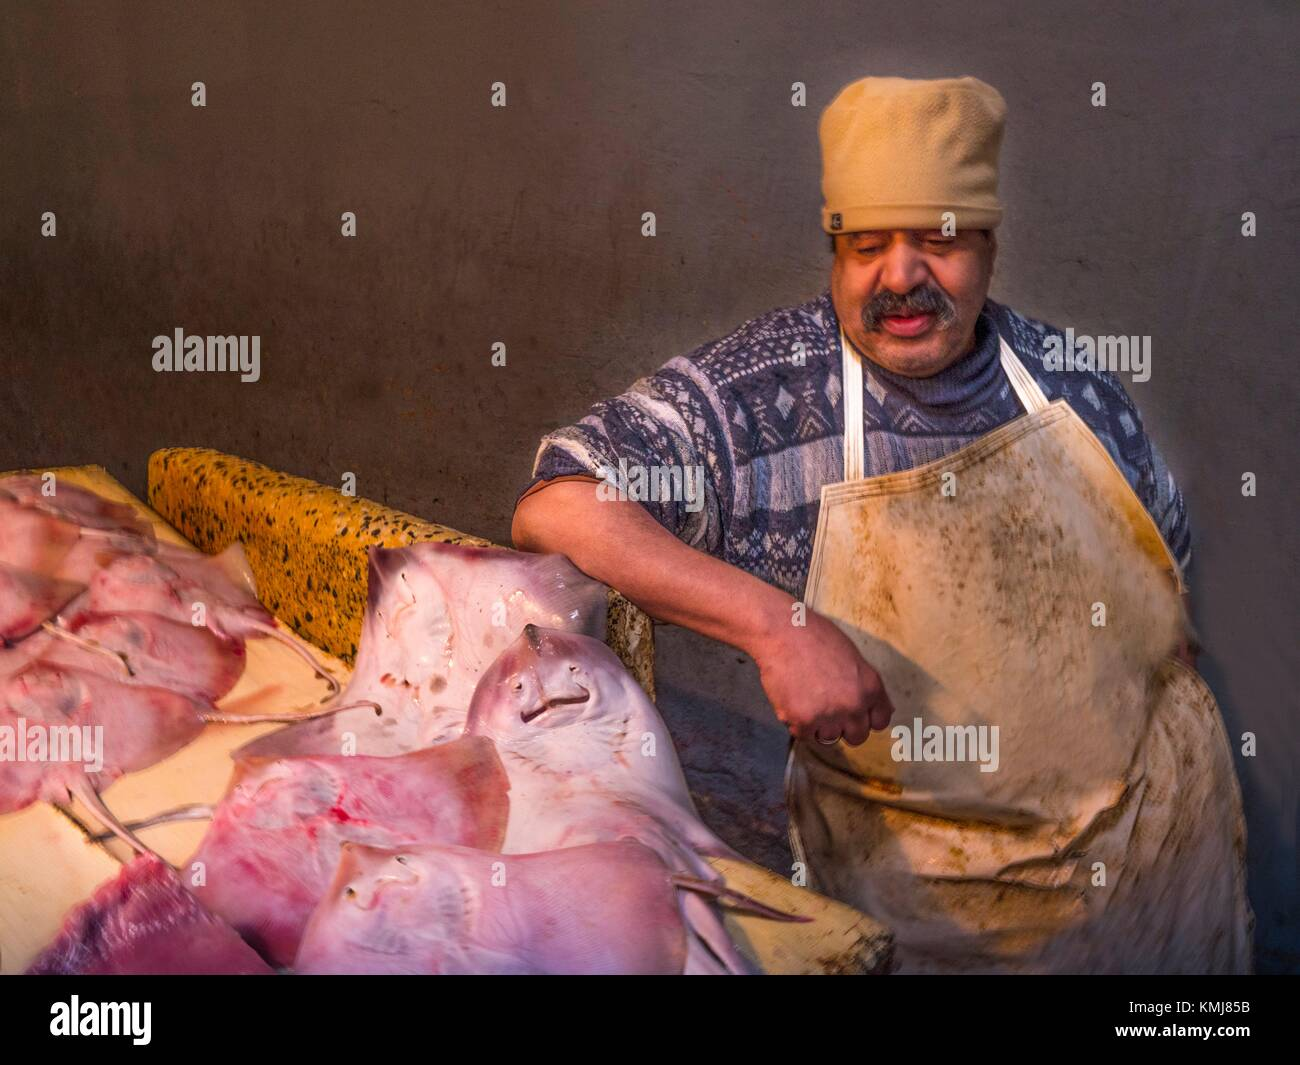 Morocco, Fes, Fishmonger on his stand, at the market of Fes, Jdid, with on the stand very nice ray. - Stock Image